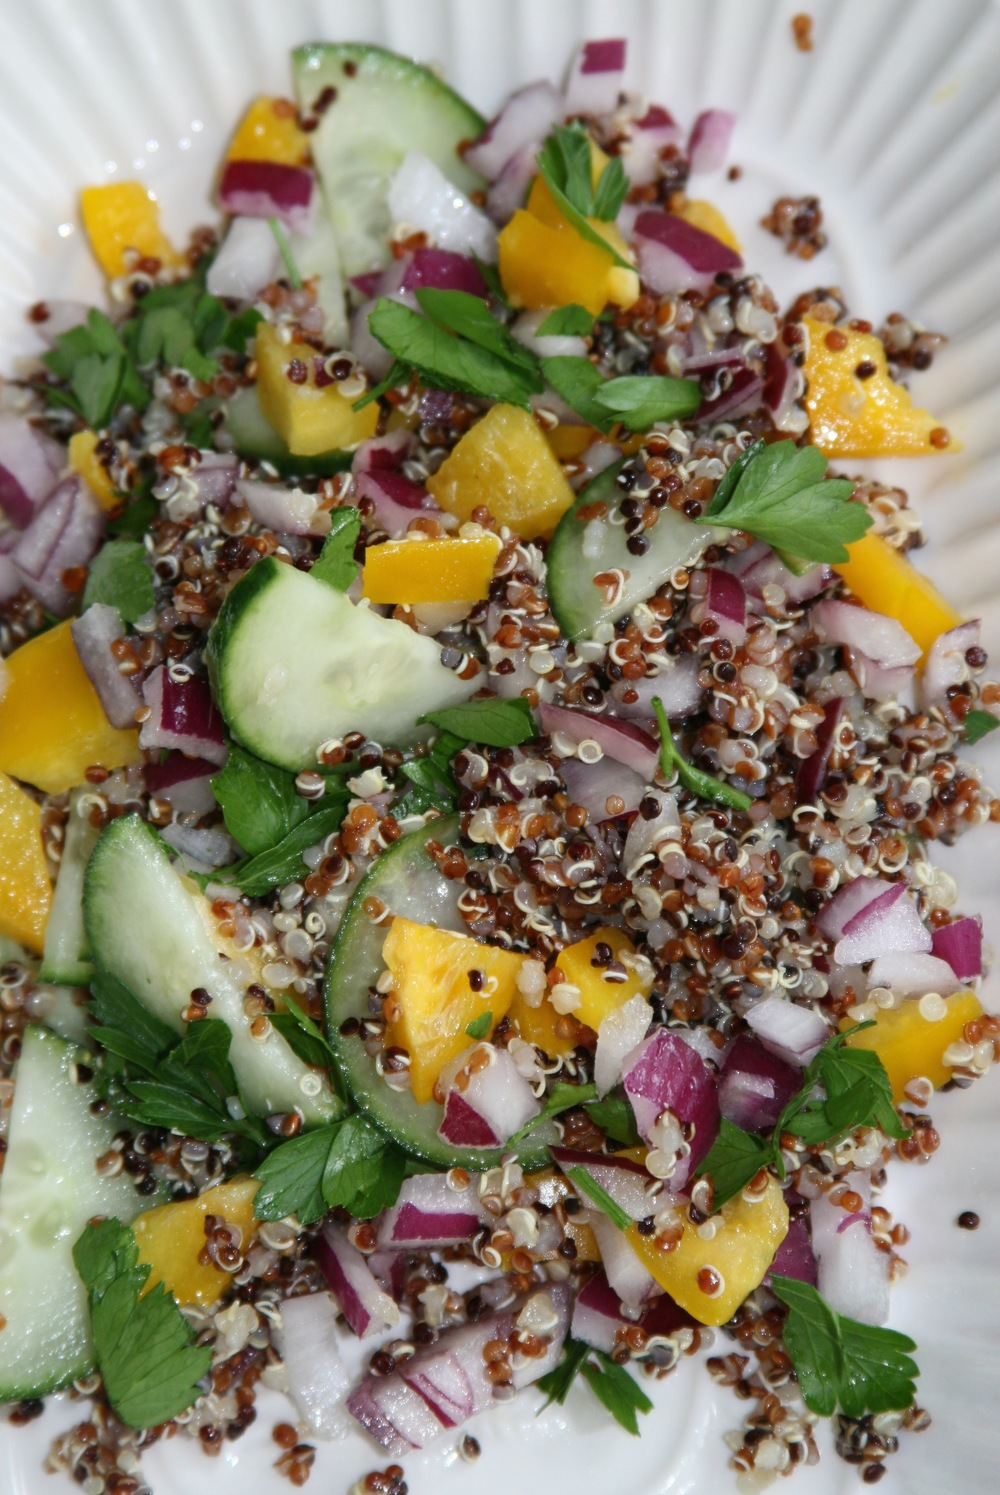 Tri-color quinoa and raw vegetables